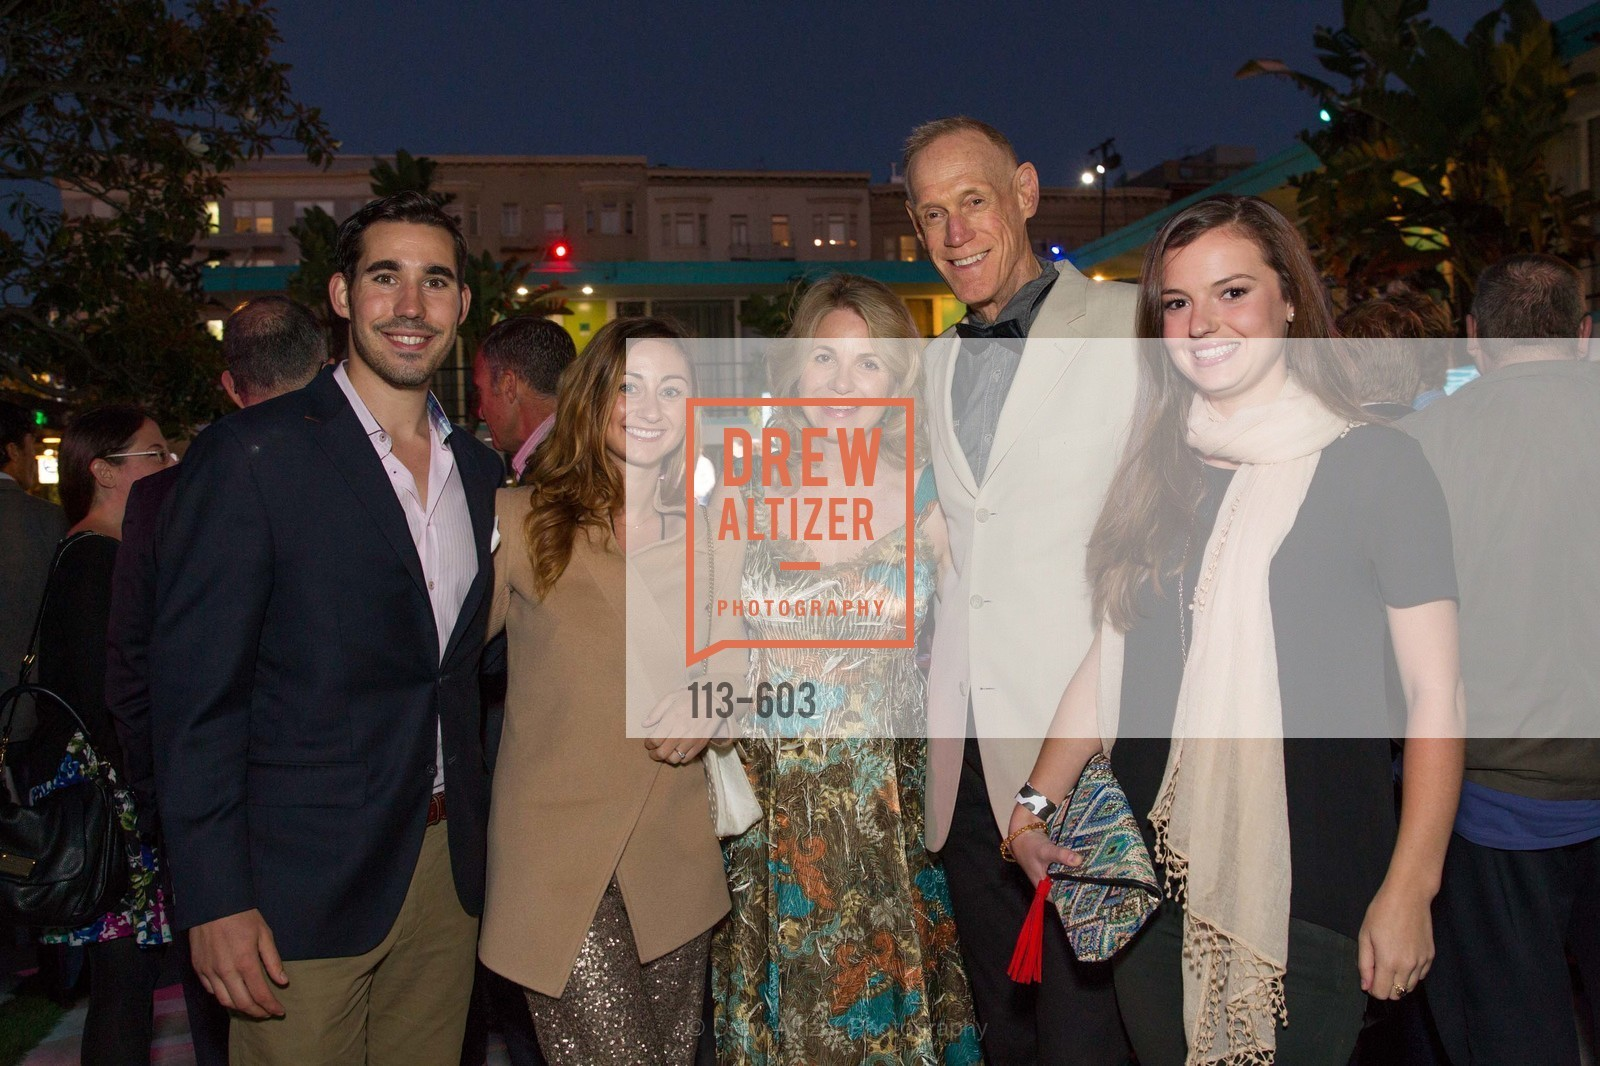 George Revel, Rebecca Miller, Simone Echeguren, Tom Kelley, Amanda Byrd, 22nd Annual TNDC CELEBRITY POOL TOSS, US, October 9th, 2014,Drew Altizer, Drew Altizer Photography, full-service agency, private events, San Francisco photographer, photographer california